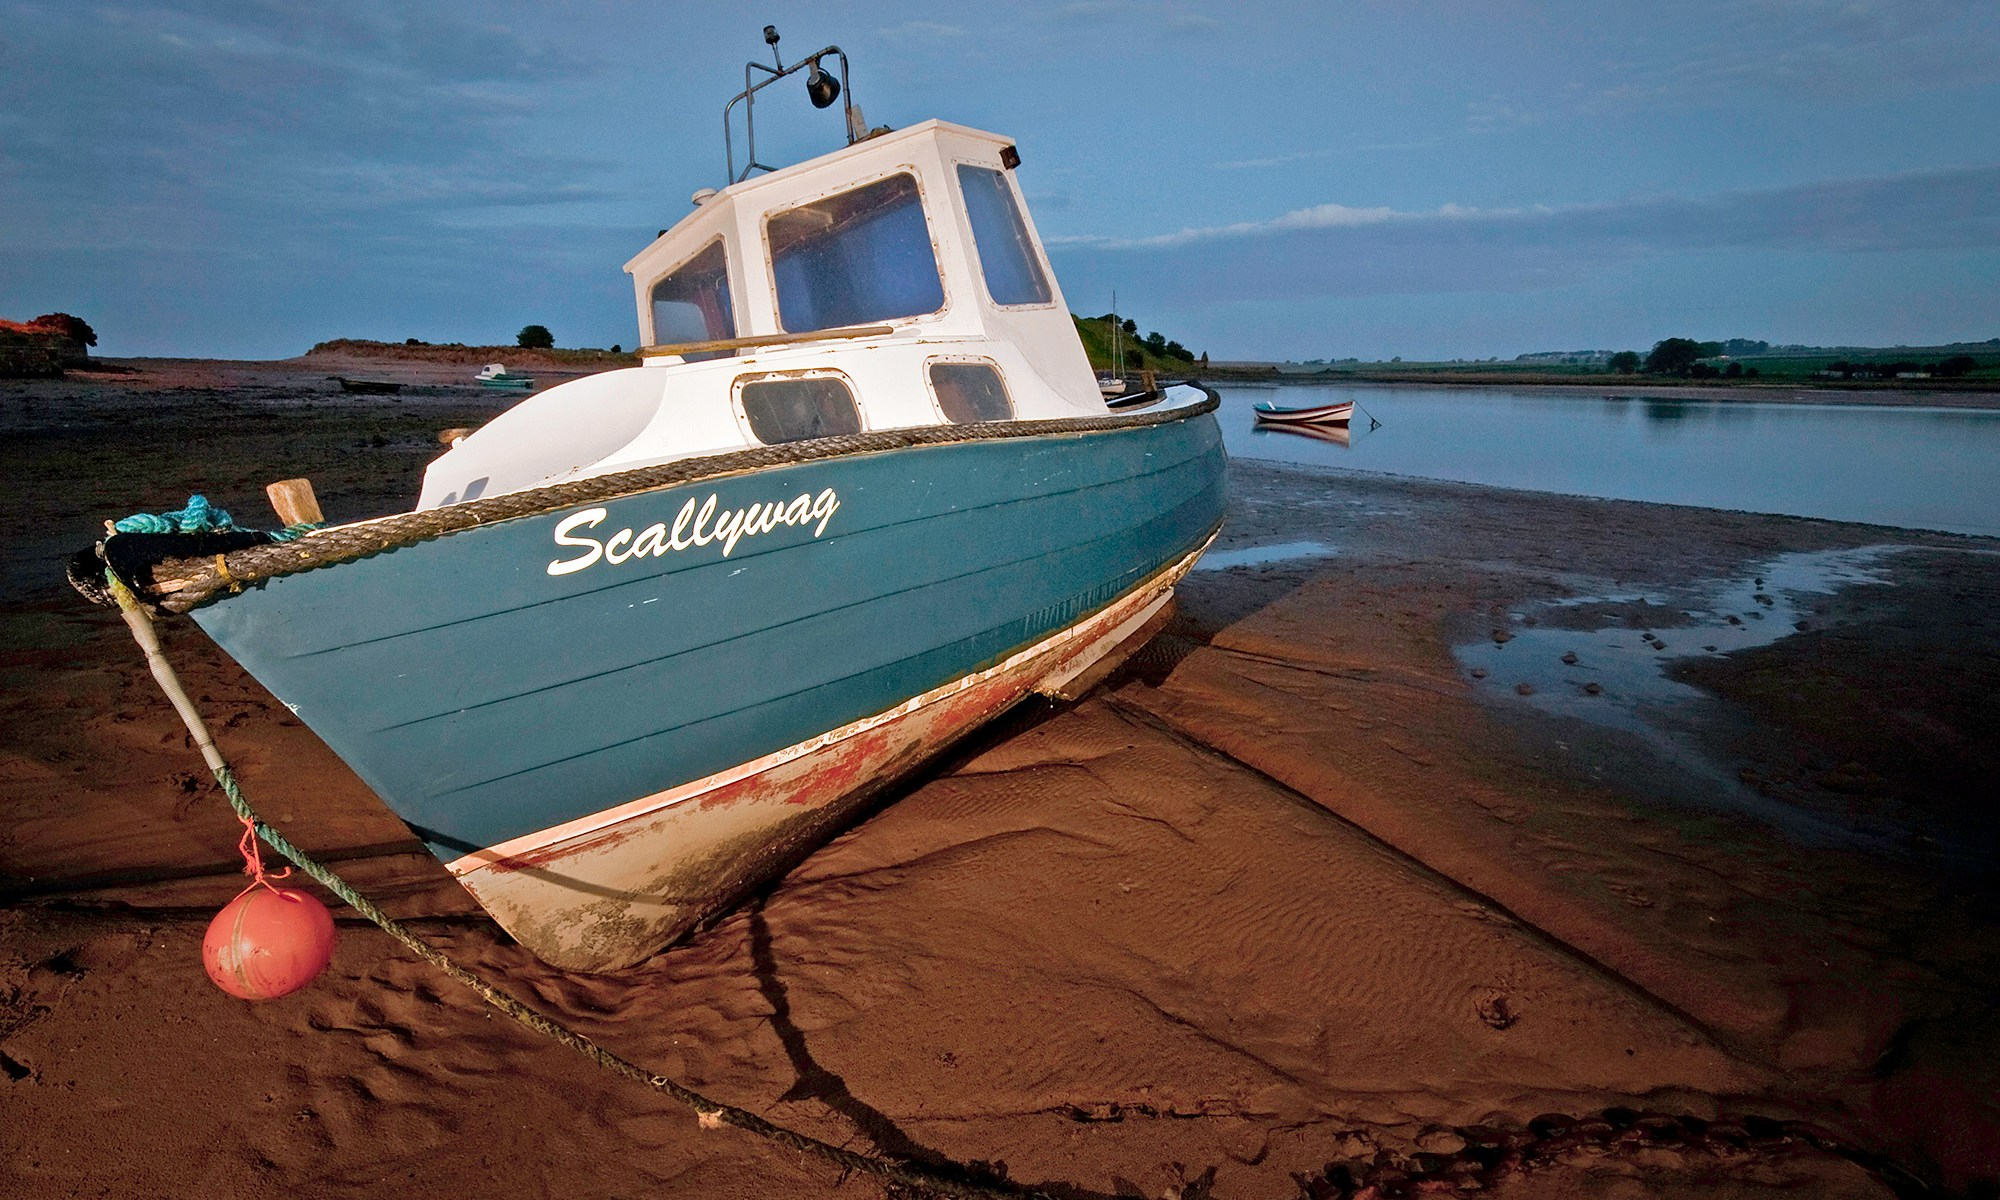 Scallywag Boat at Alnmouth Harbour